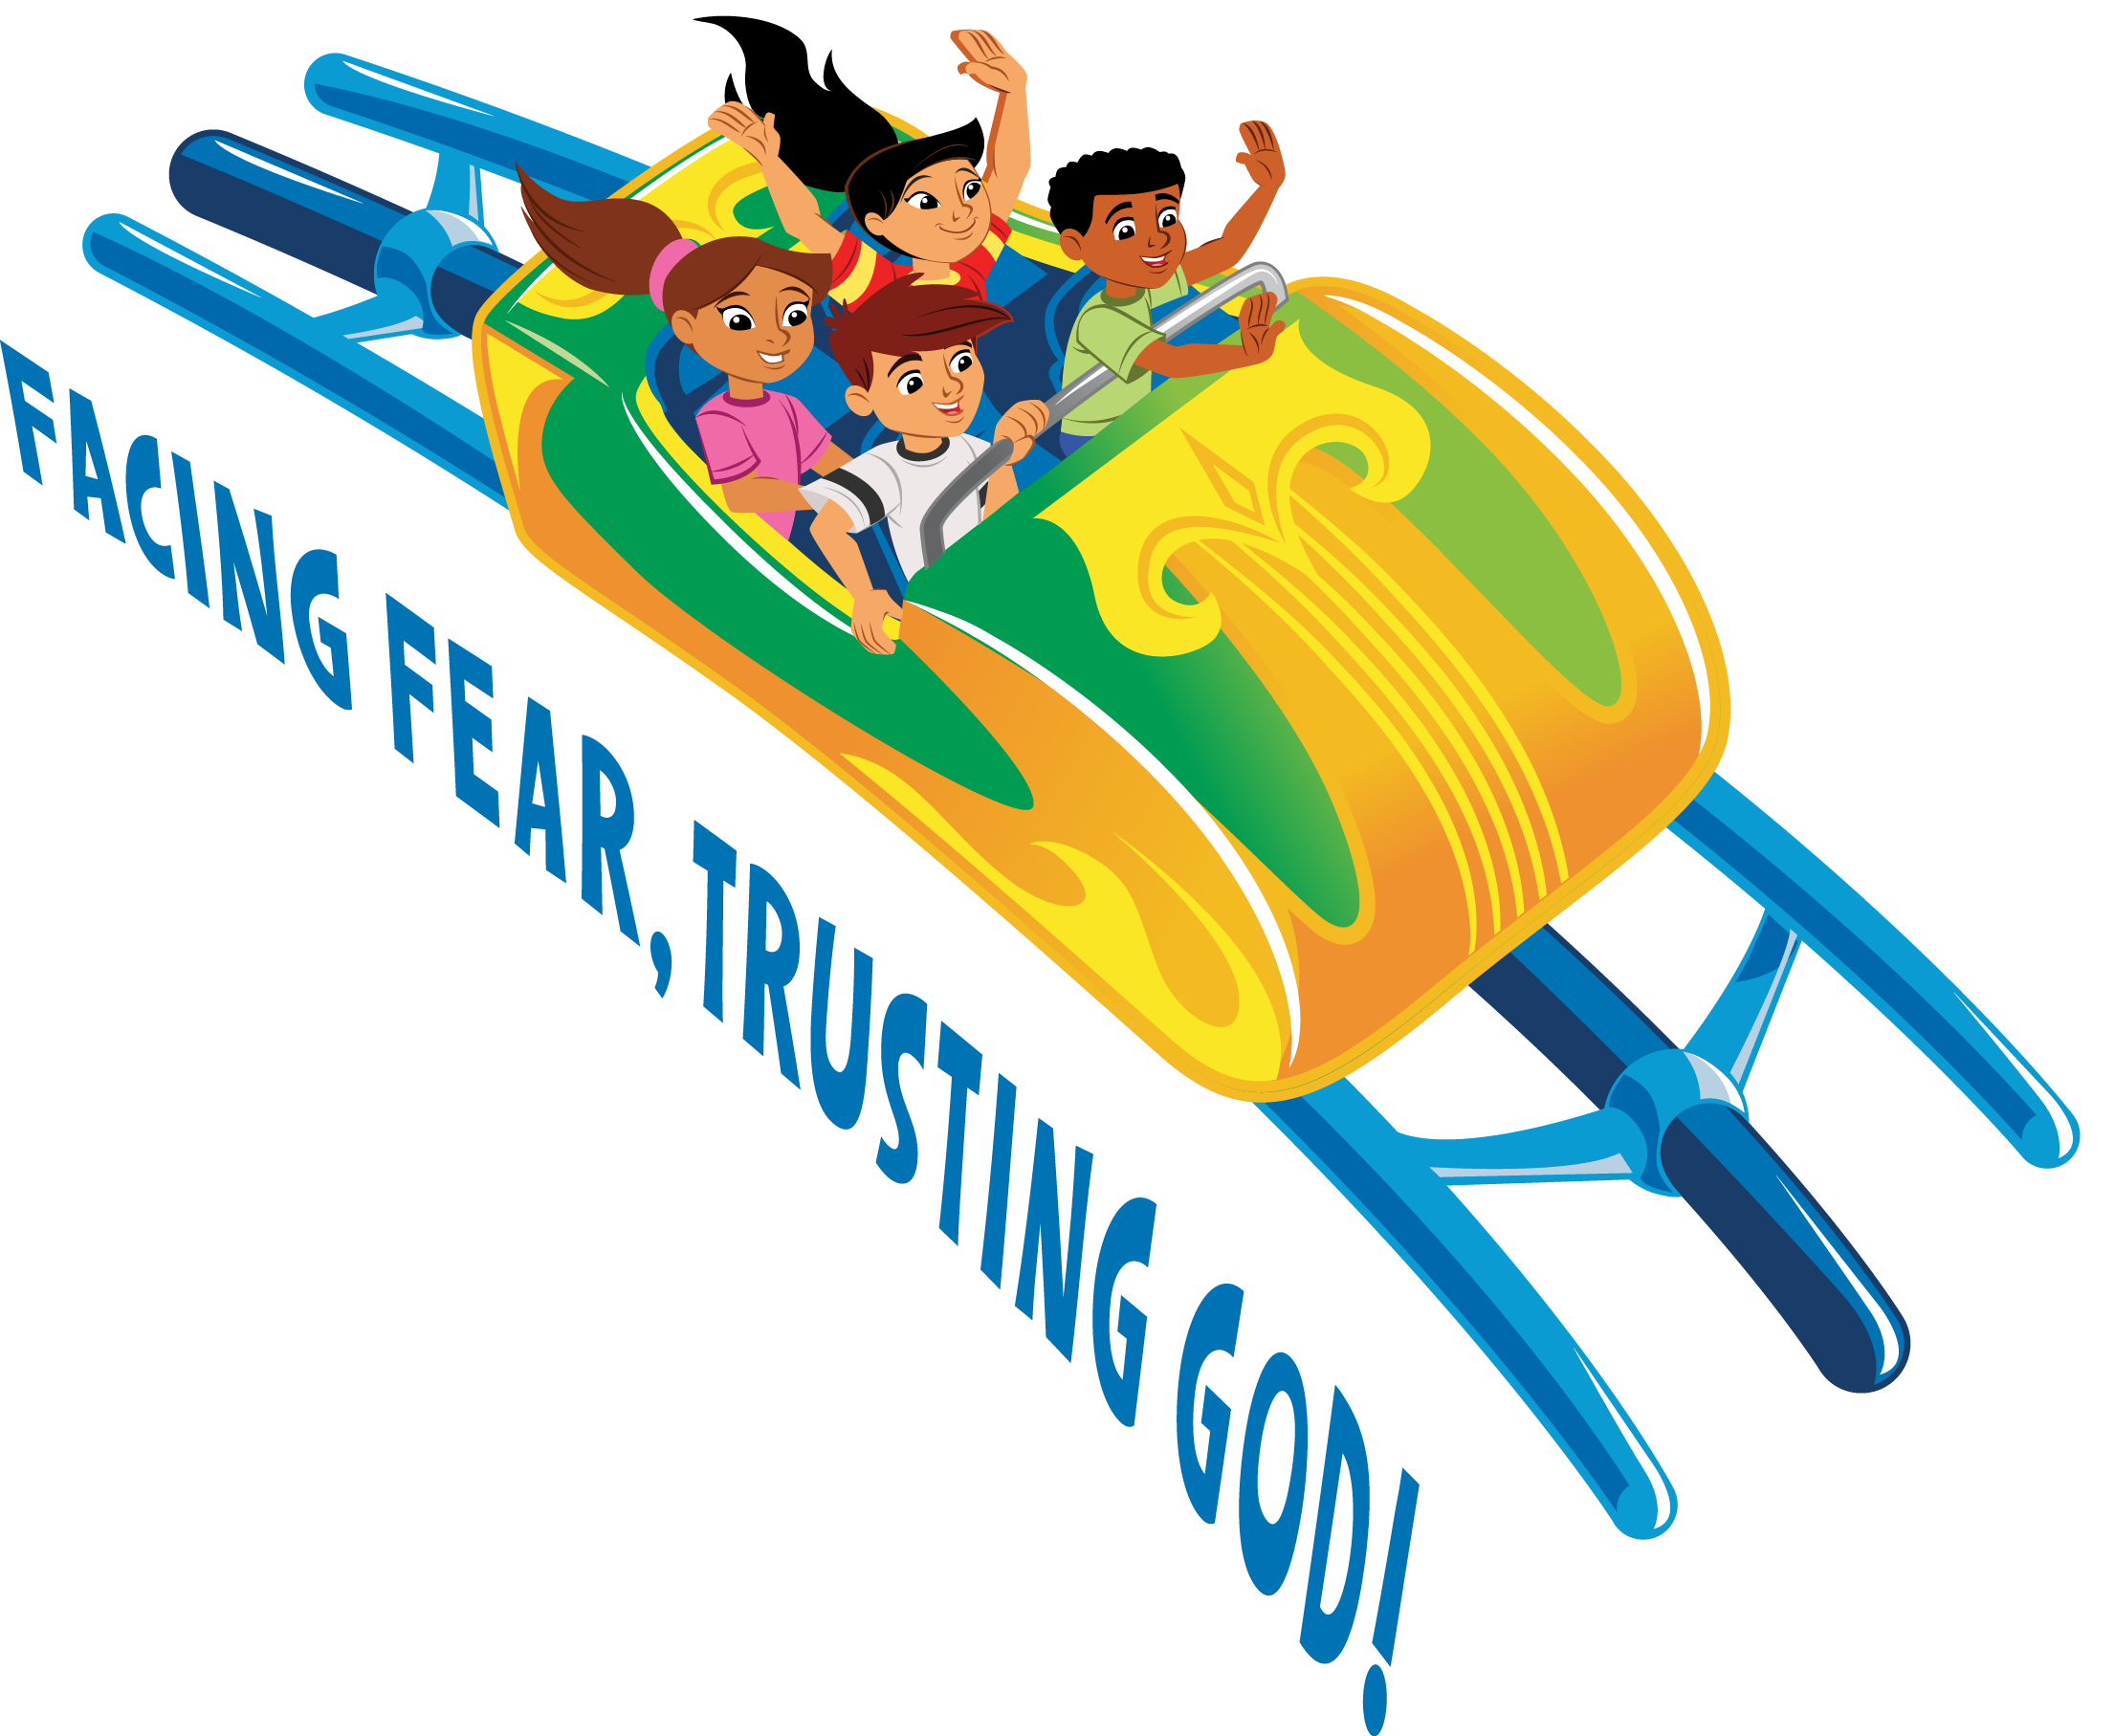 Free cliparts download clip. Rollercoaster clipart banner stock